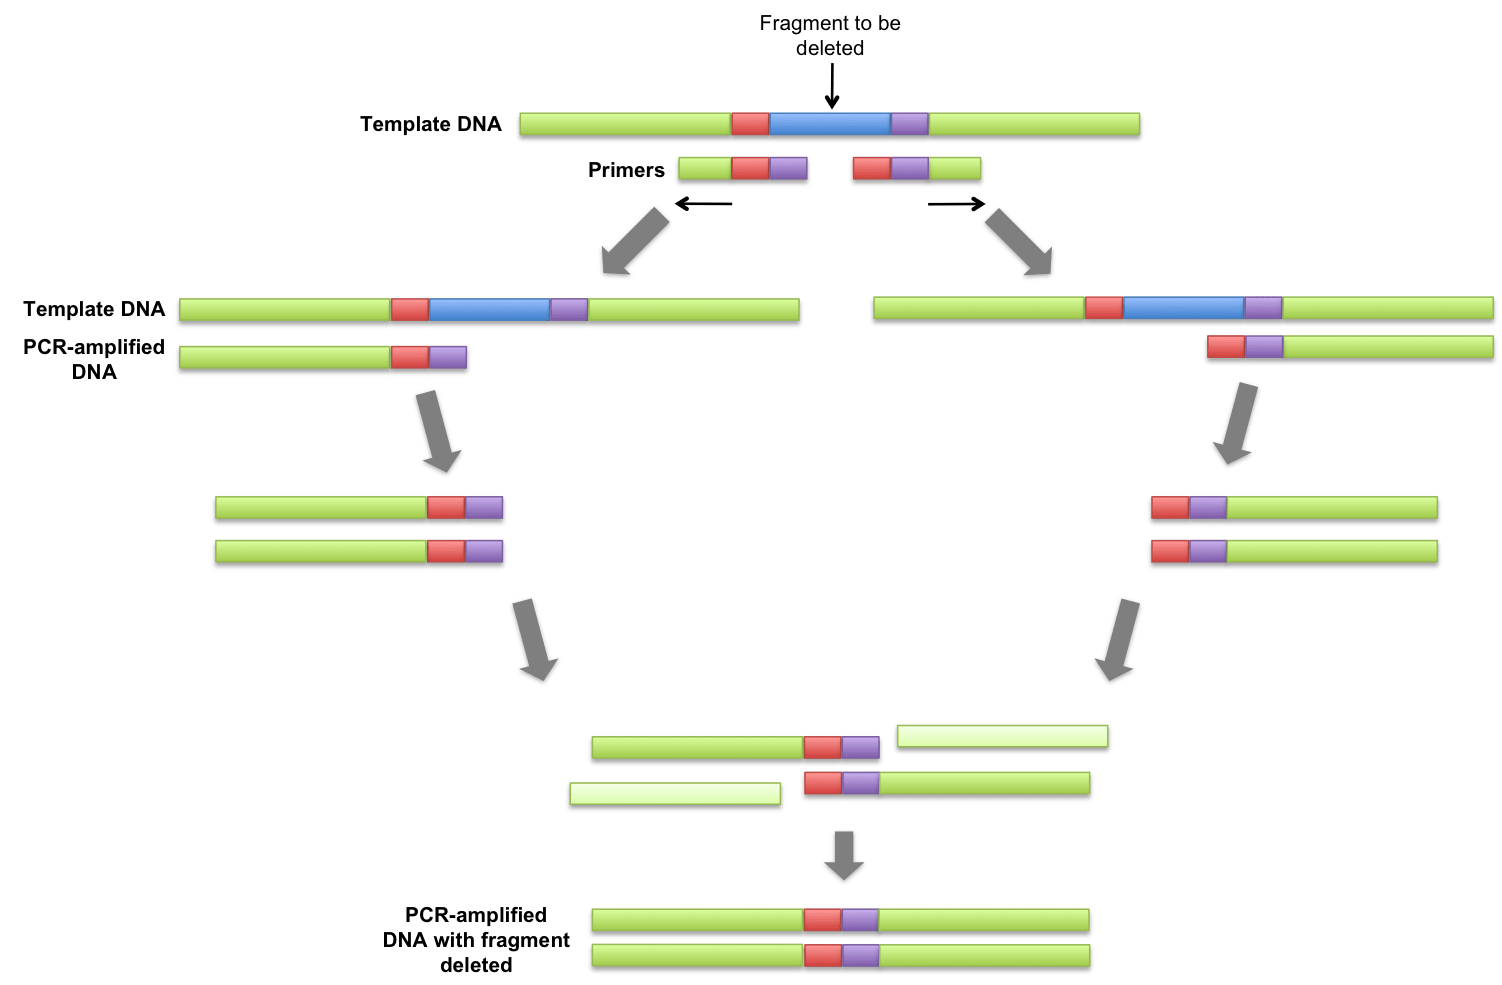 polymerase chain reaction diagram 2 p90 wiring list of synonyms and antonyms the word overlap pcr